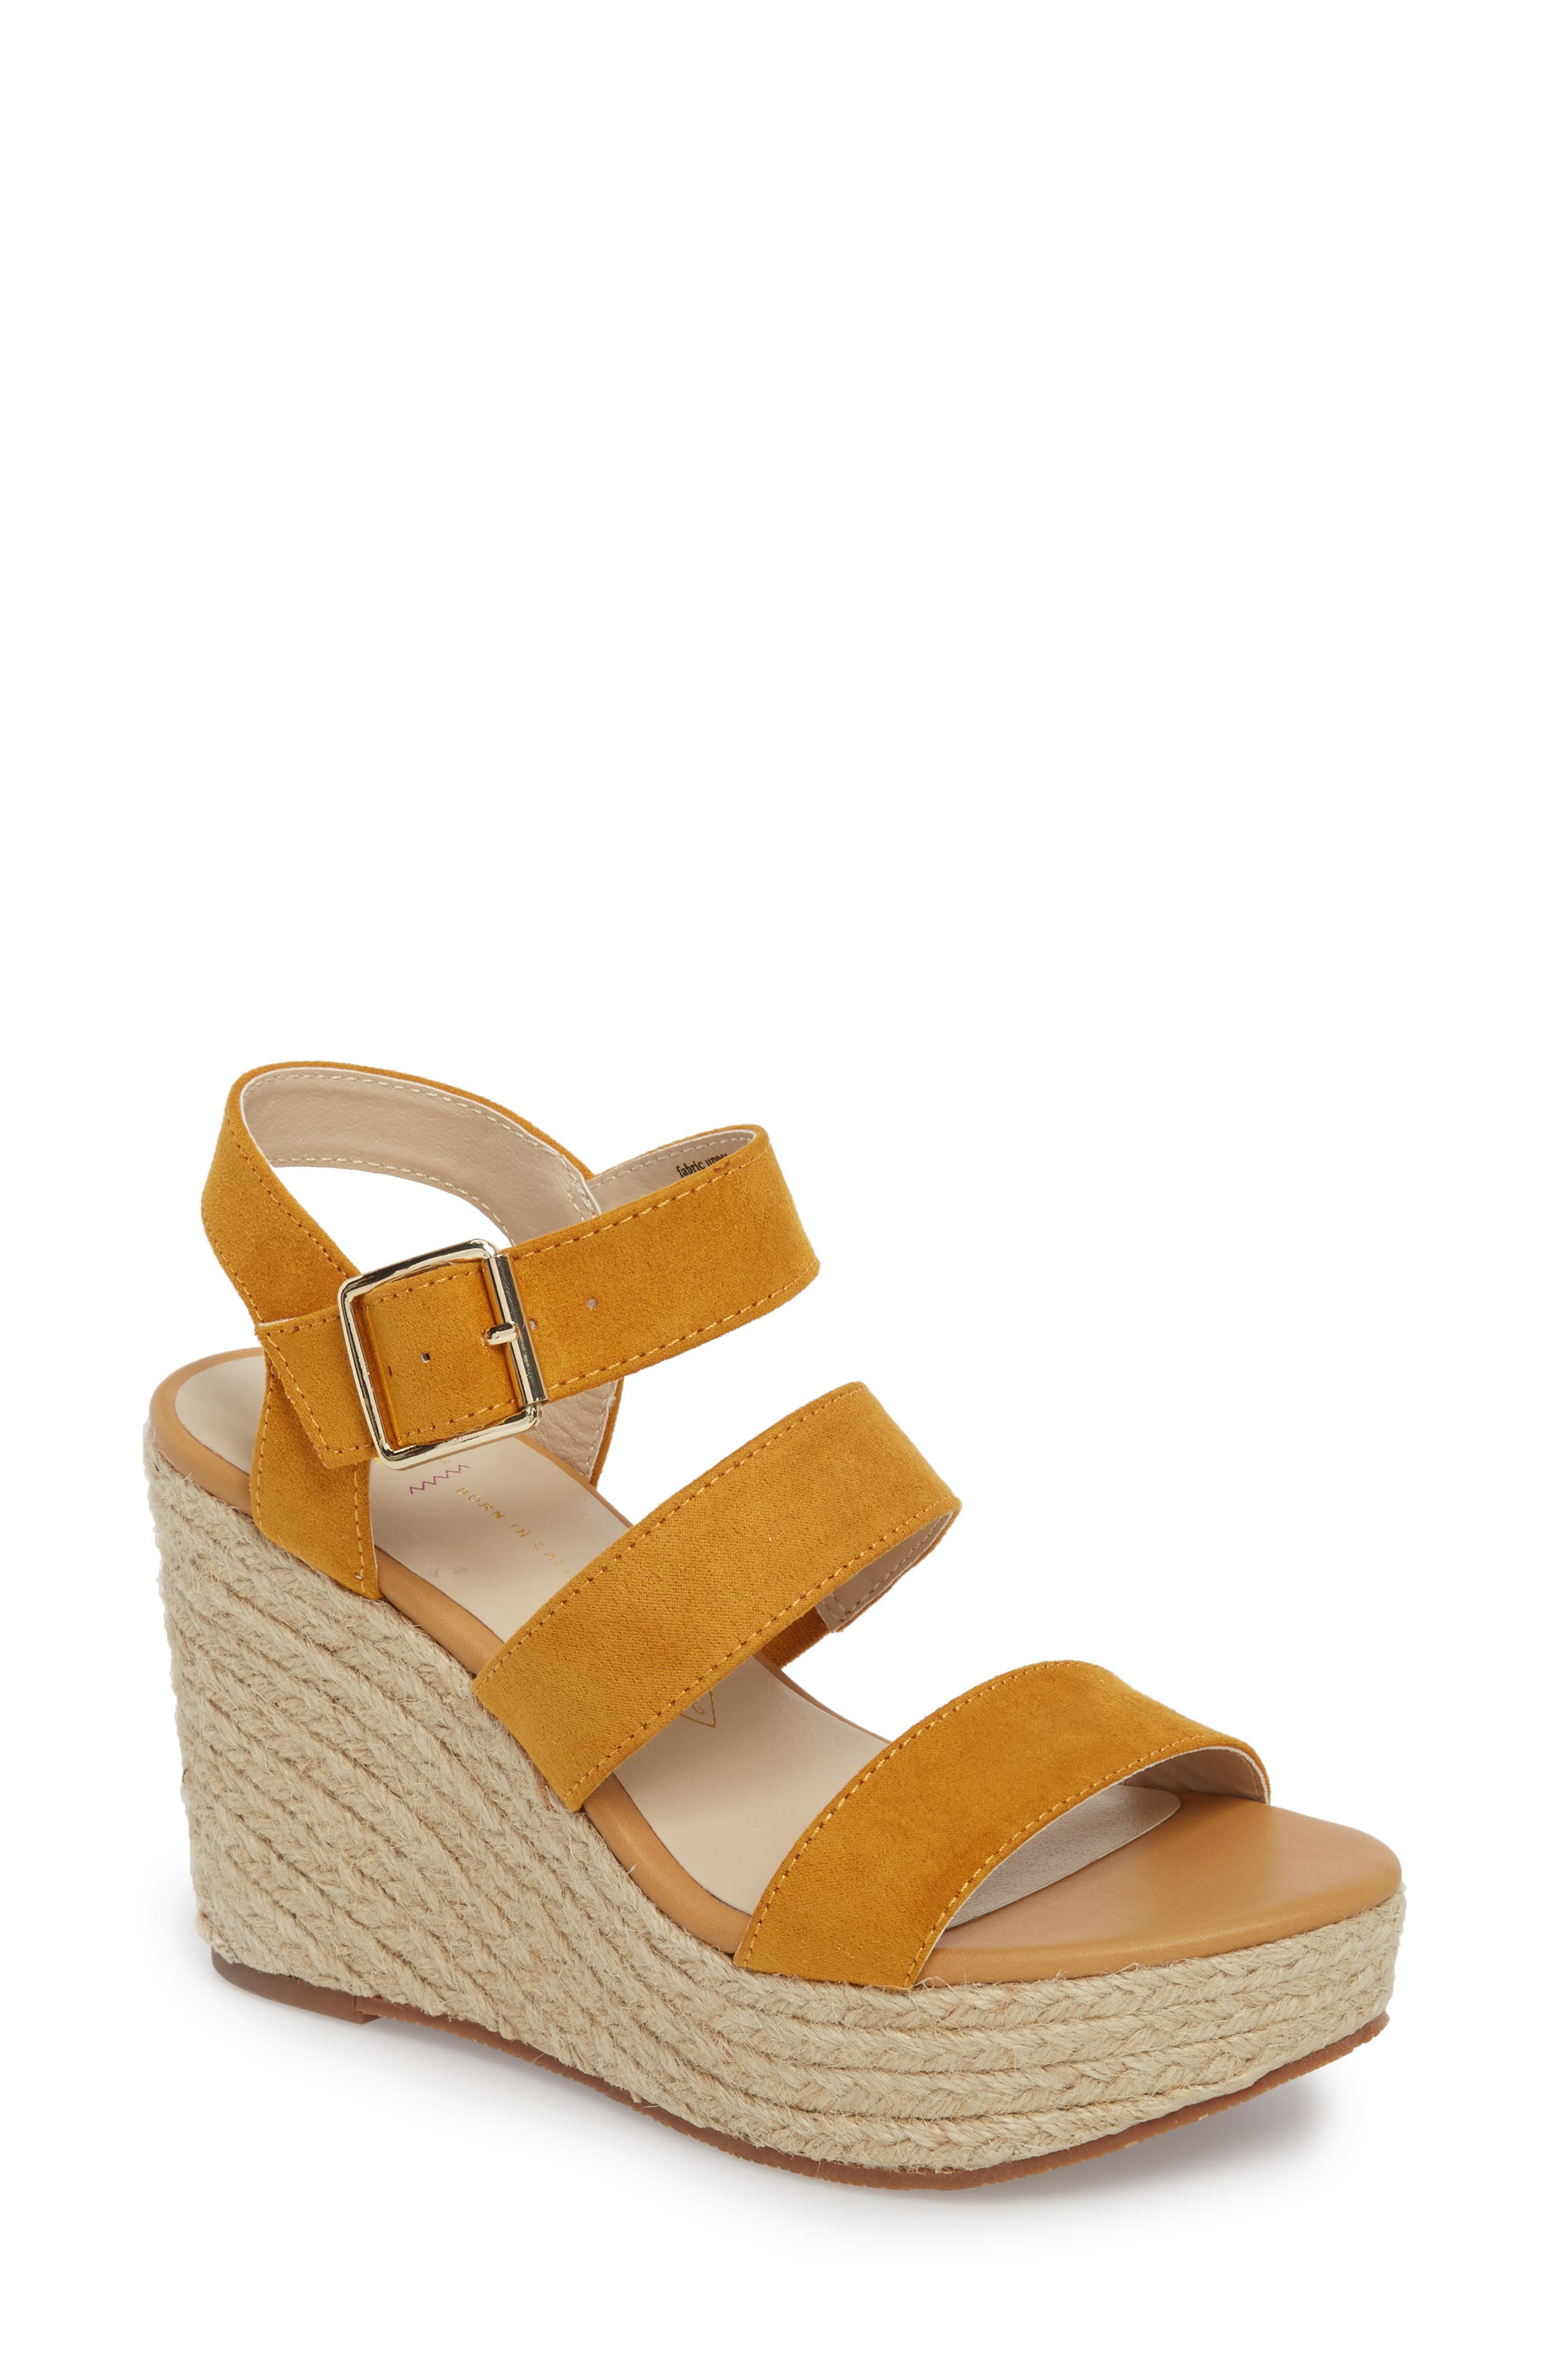 Snack Bar Espadrille Wedge Sandal,                         Main,                         color, Taupe Suede